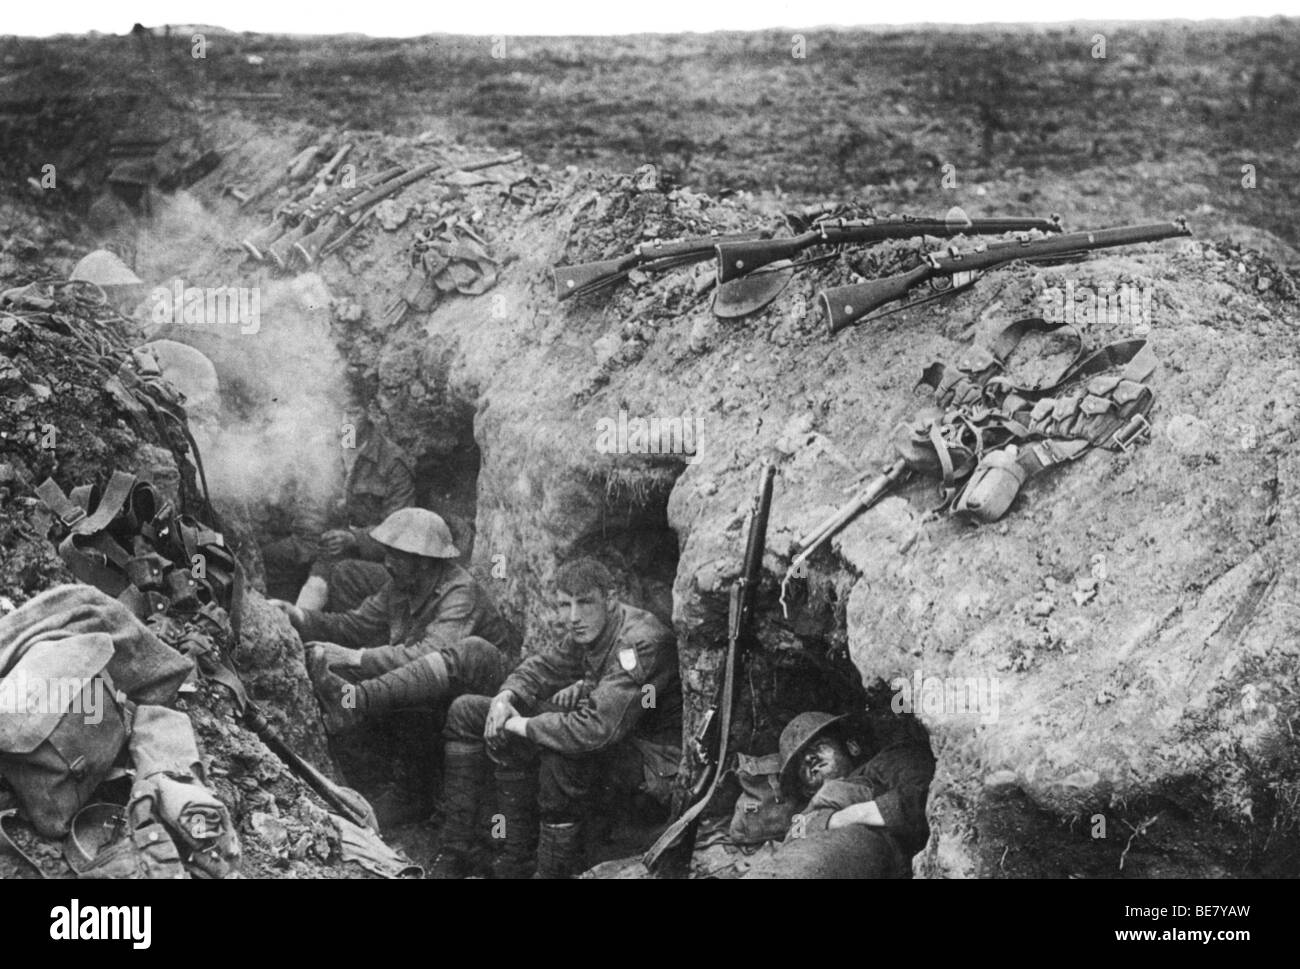 FIRST WORLD WAR - British soldiers resting in their trench - Stock Image